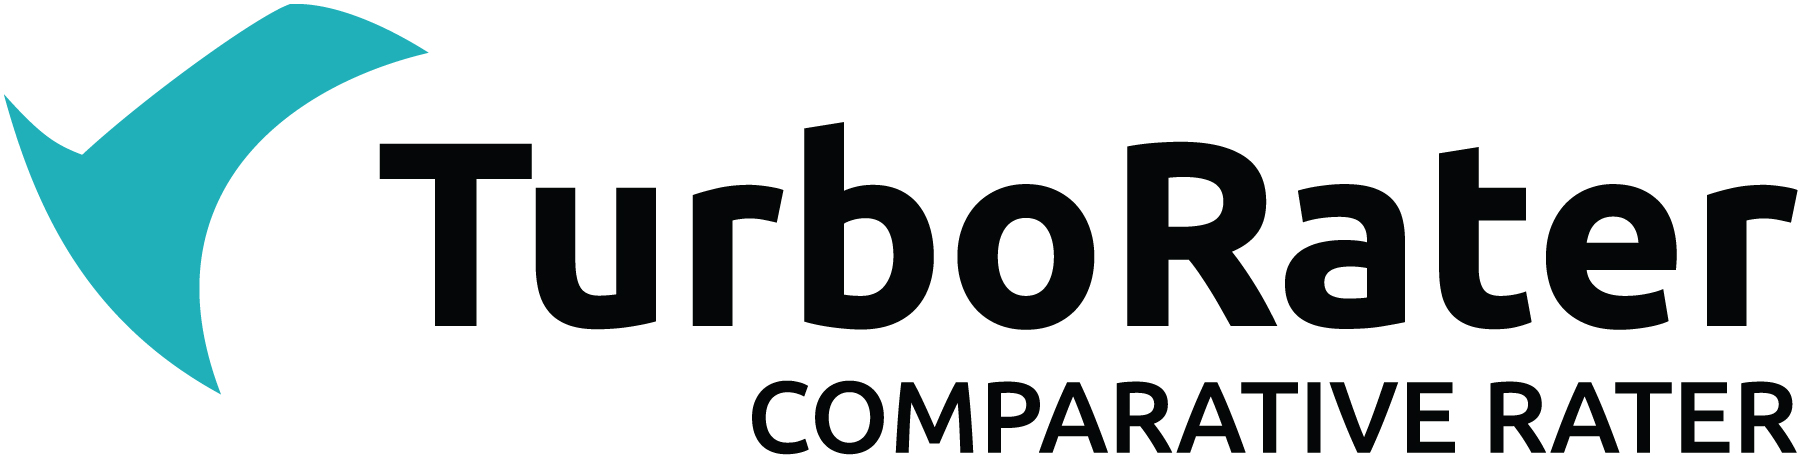 TurboRater logo